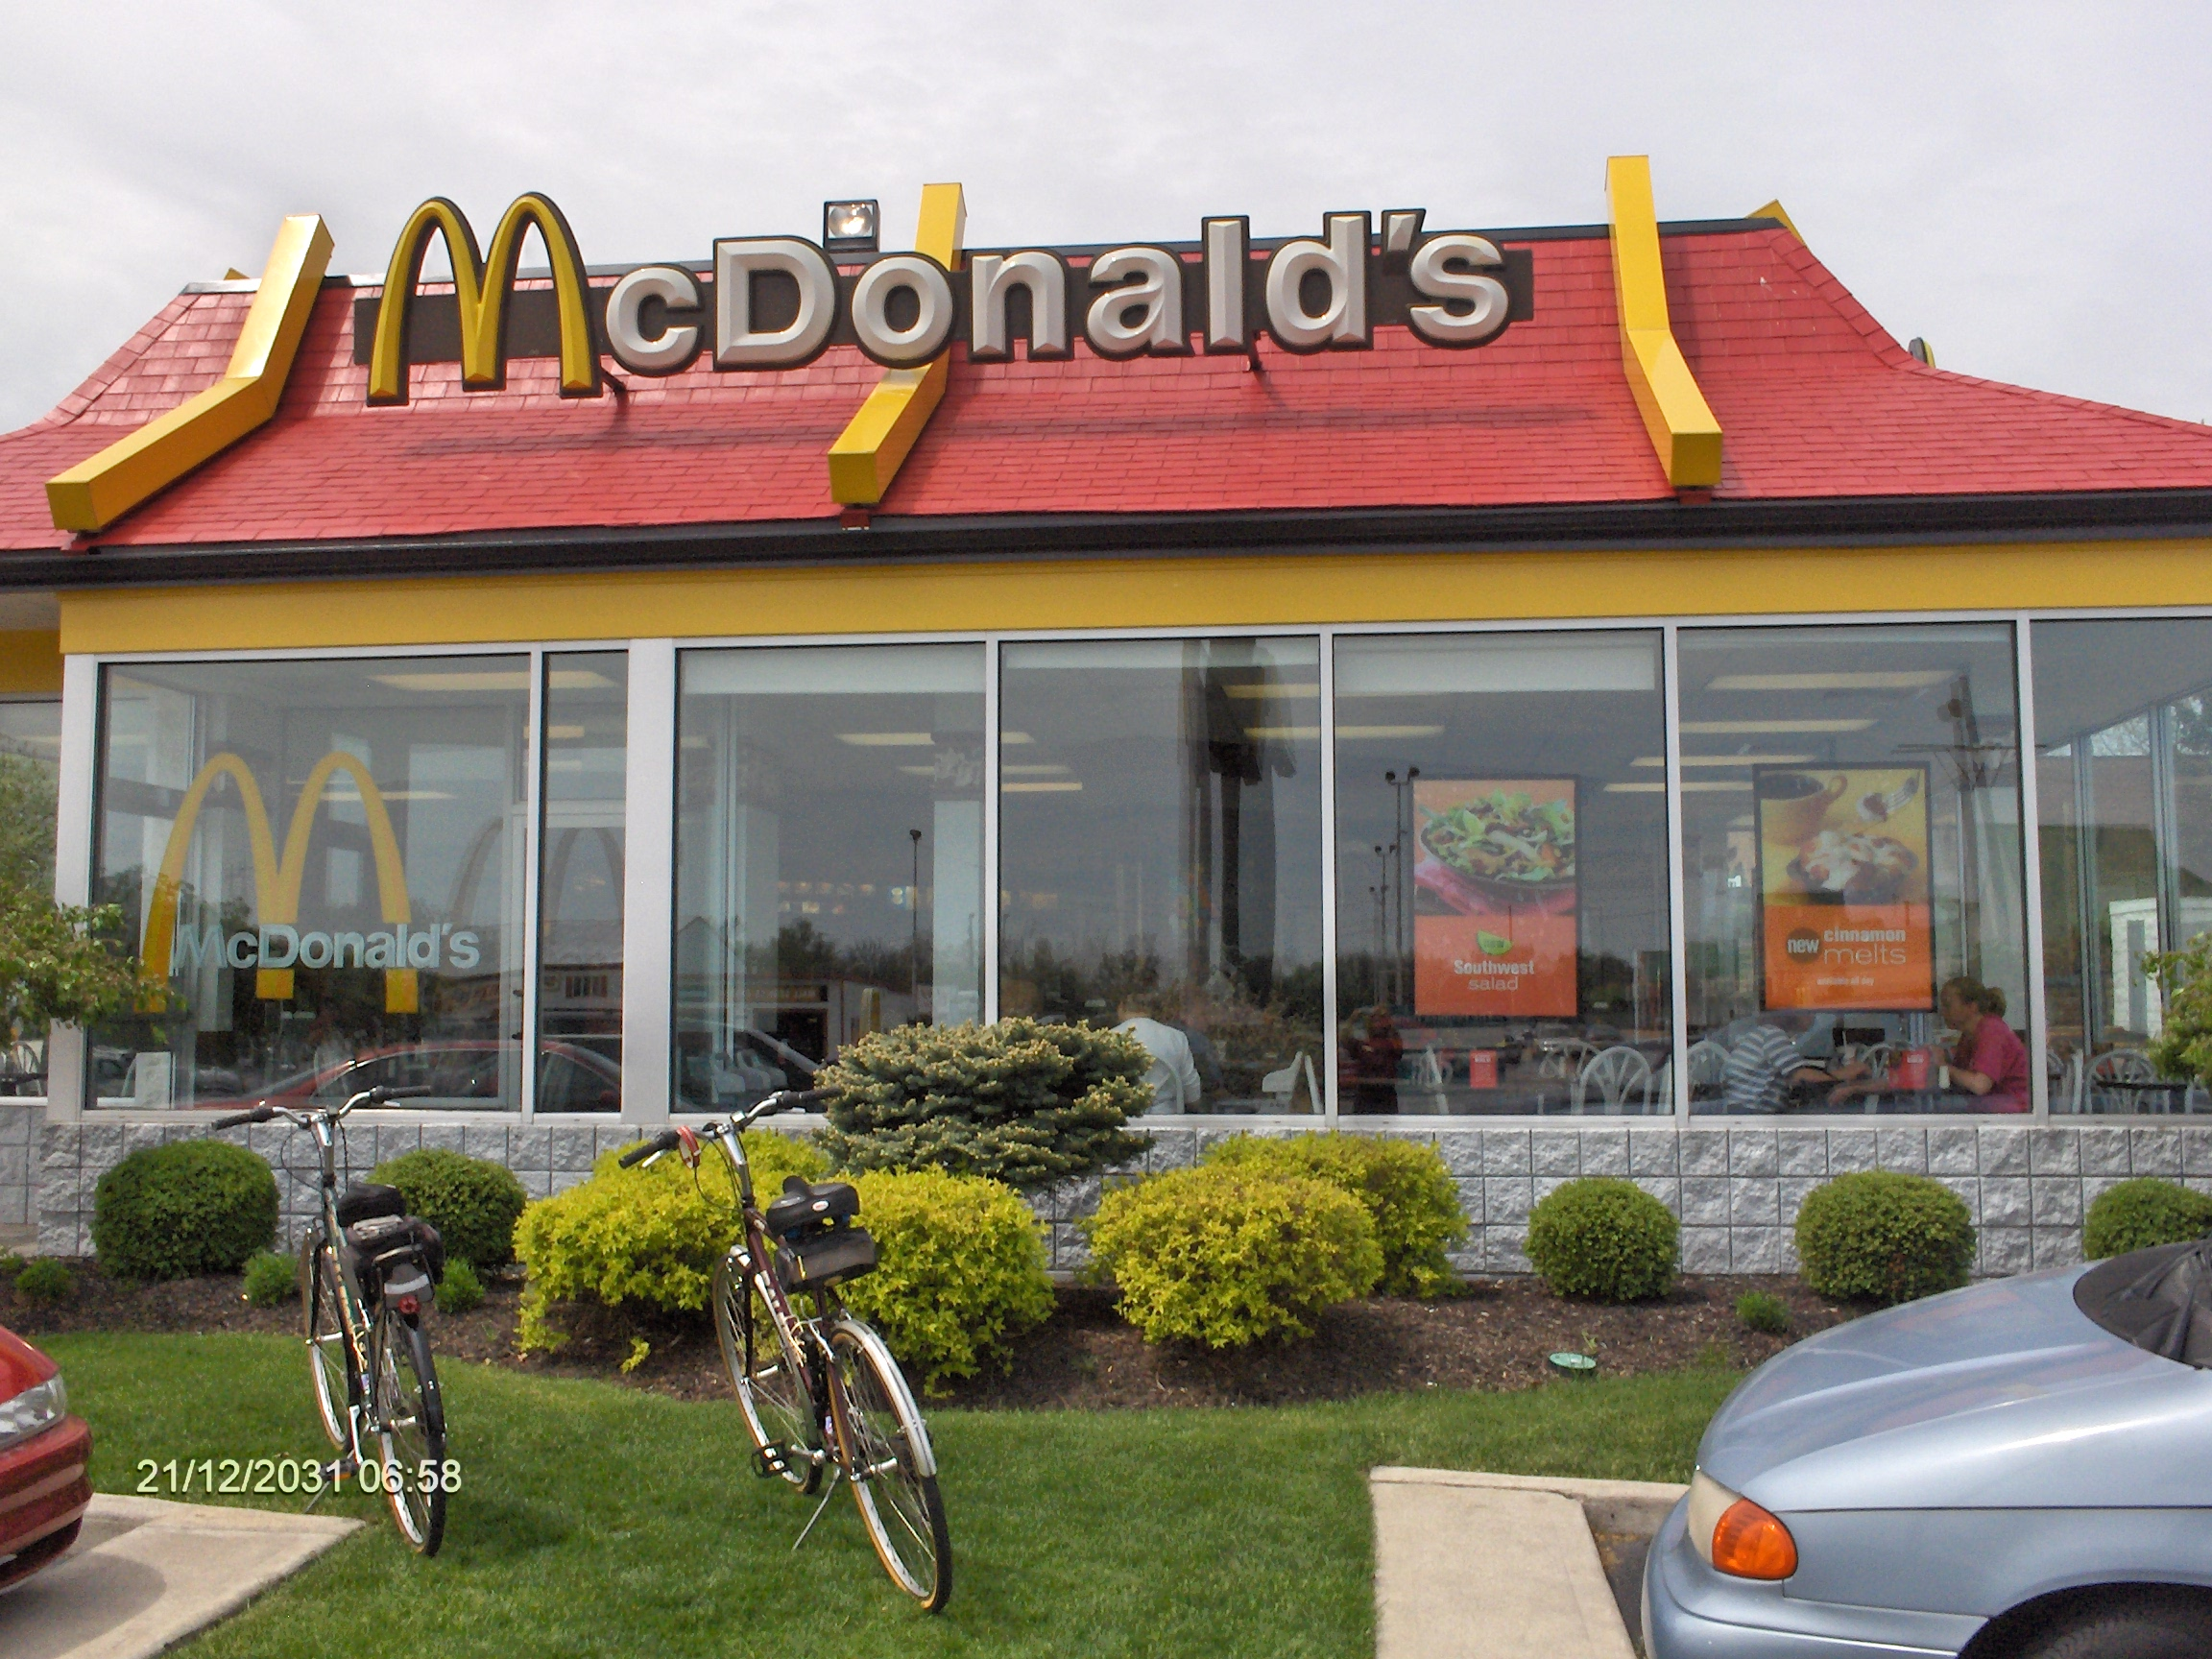 mcdonalds quality problems Mcdonald's corp is overhauling its food-safety strategy in china after problems with a supplier hit the fast-food chain's image and eroded sales in the country.